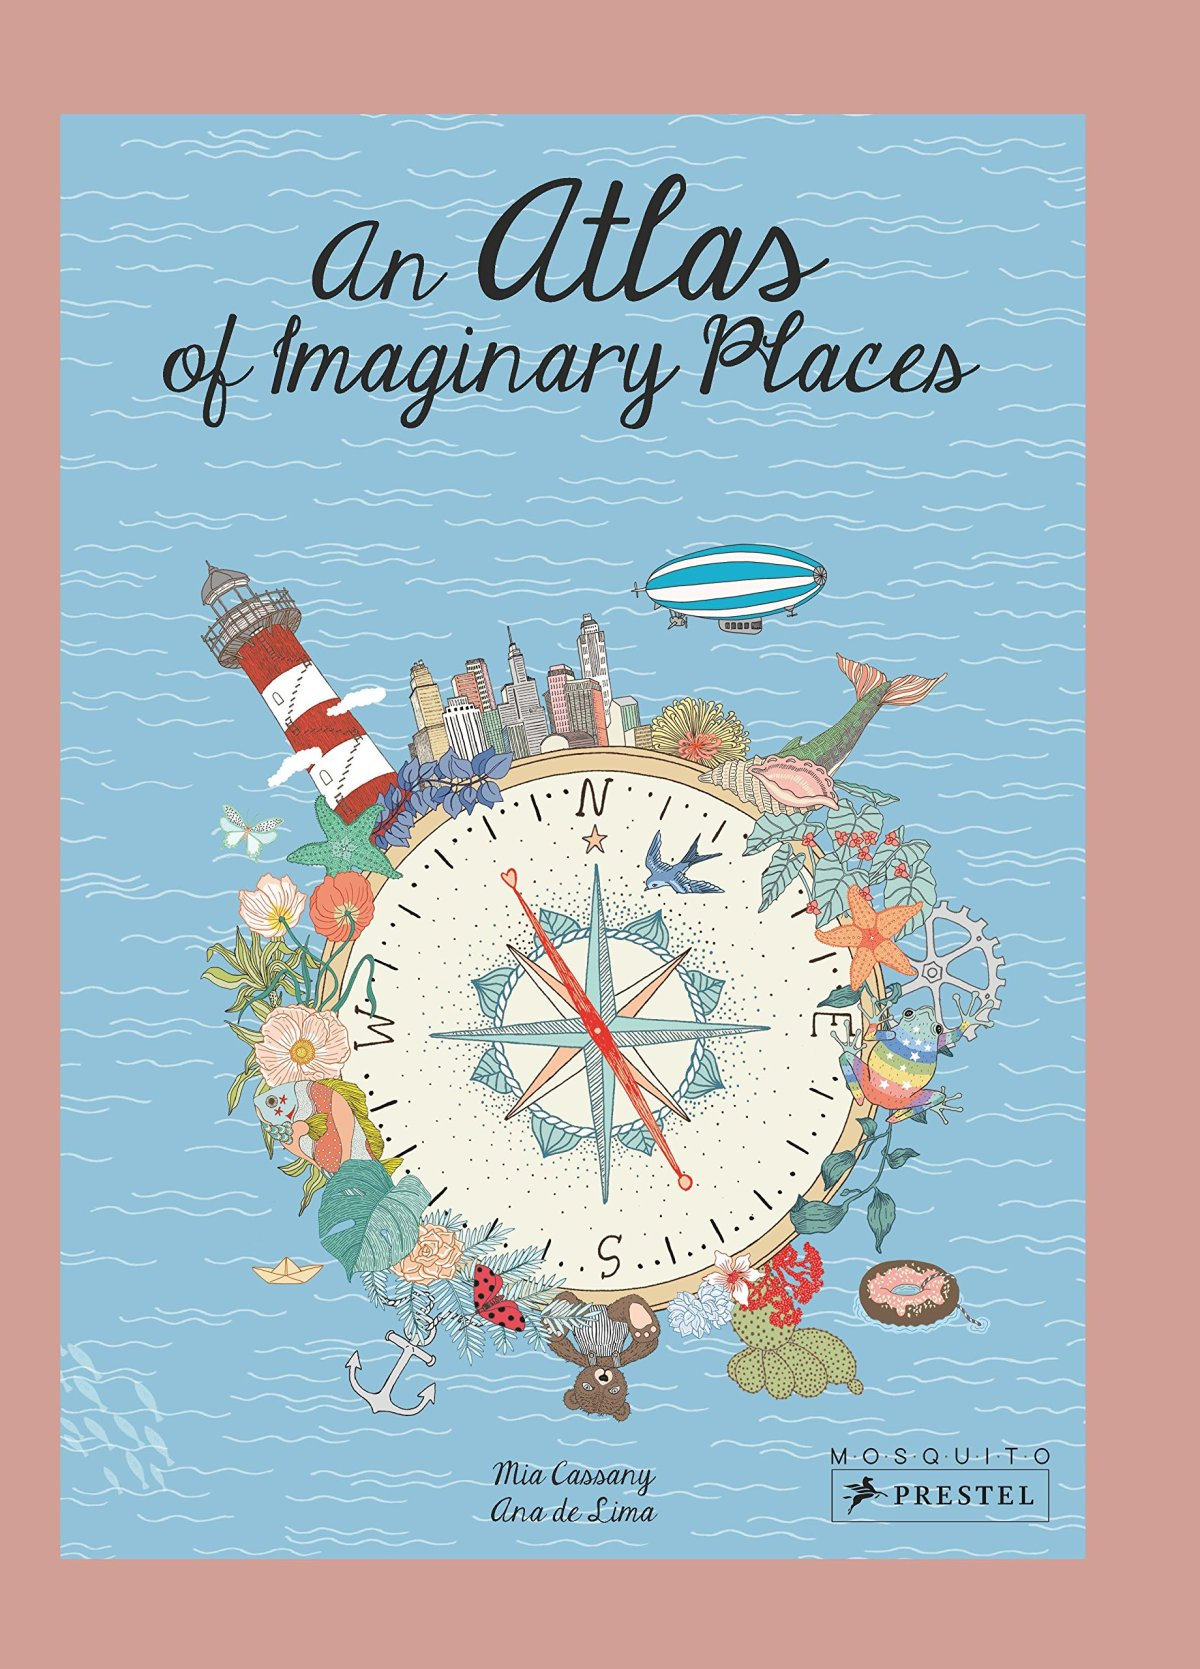 atlast of imaginary places cover image